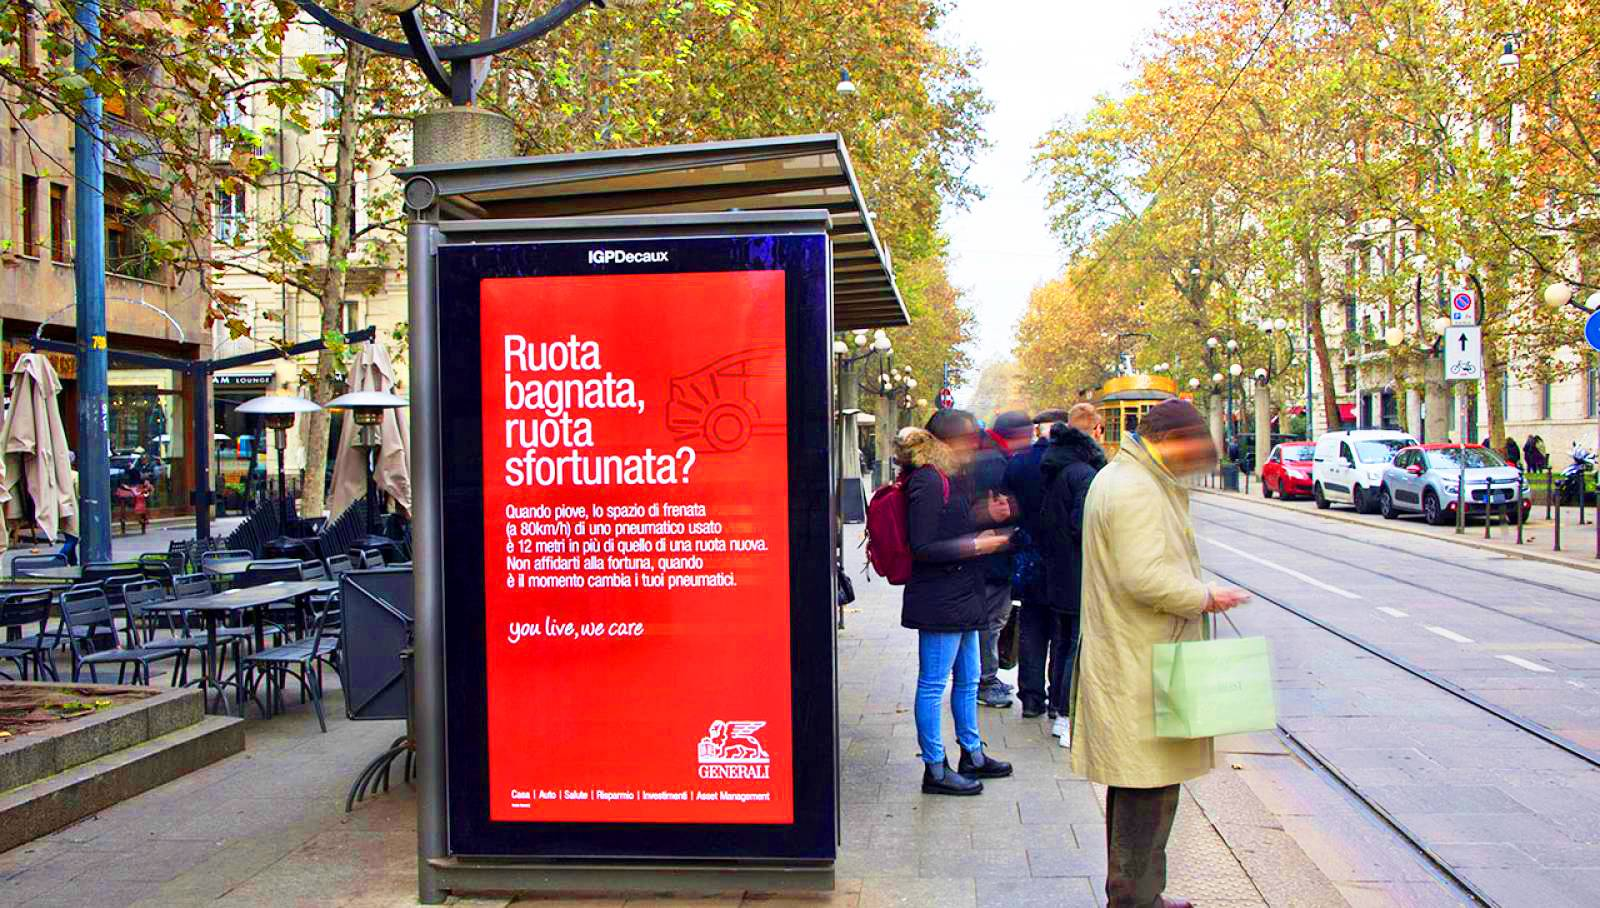 Dooh advertising in Milan IGPDecaux digital shelters for Generali